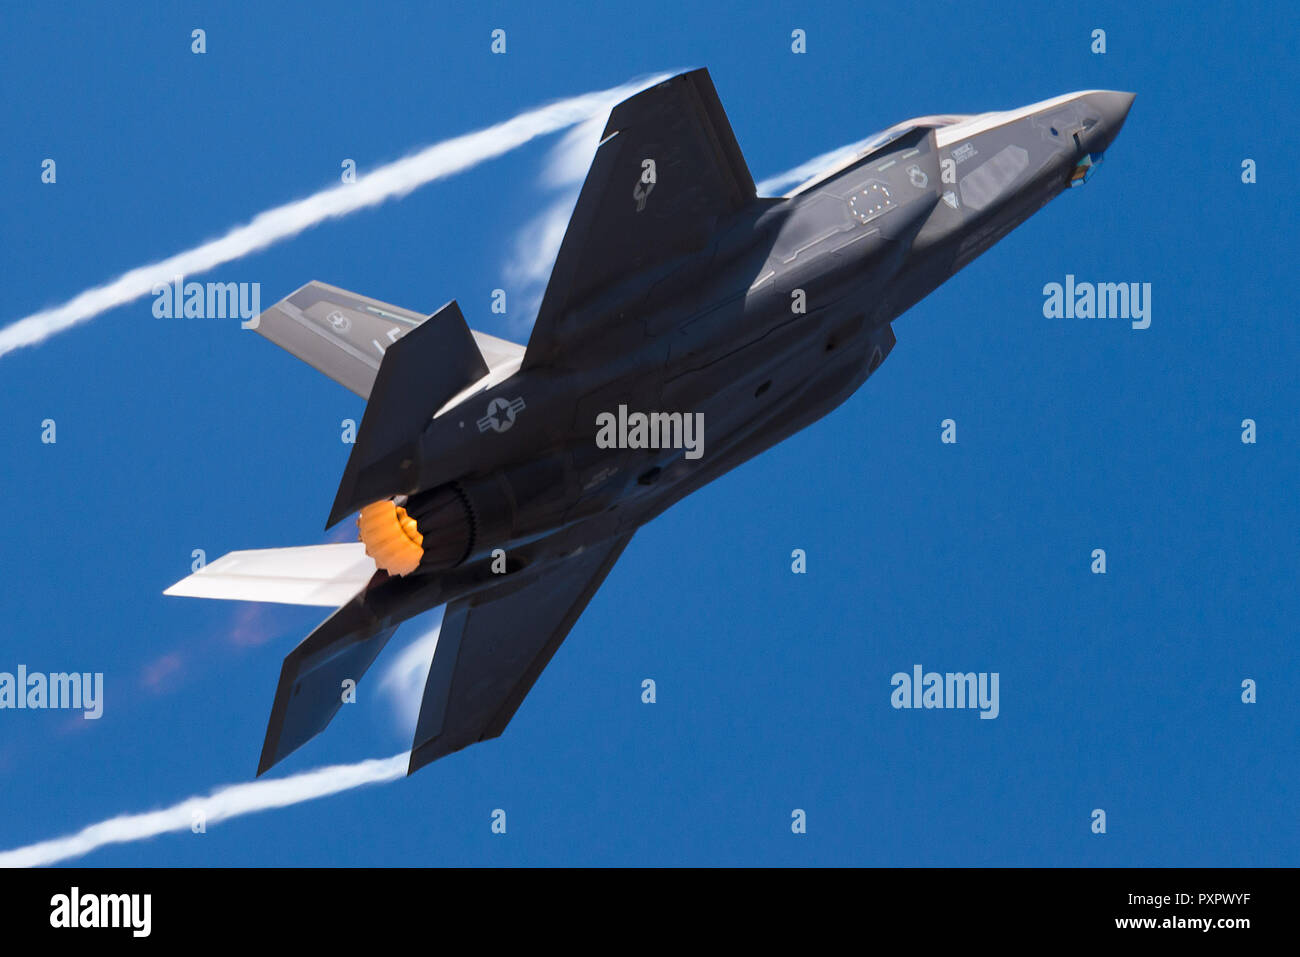 Impressive take off of a Lockheed Martin F-35 Lightning II fifth generation fighter jet of the Unites States Air Force (USAF). - Stock Image